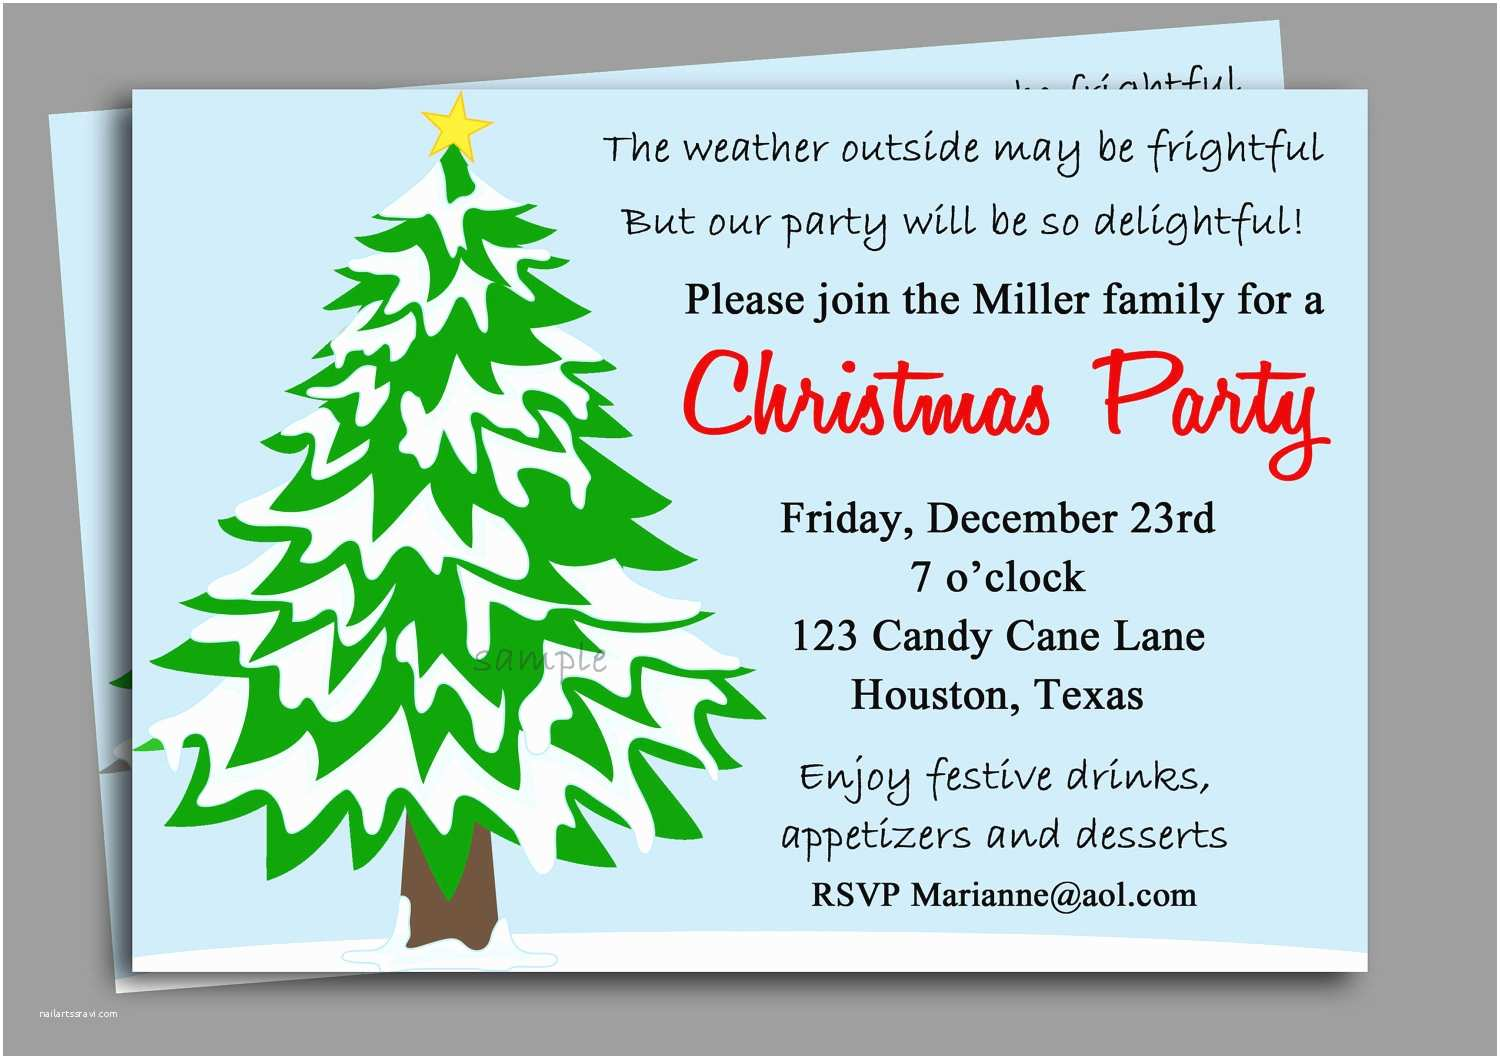 Christmas Party Invitations Christmas Party Invitation Printable Winter Wonderland